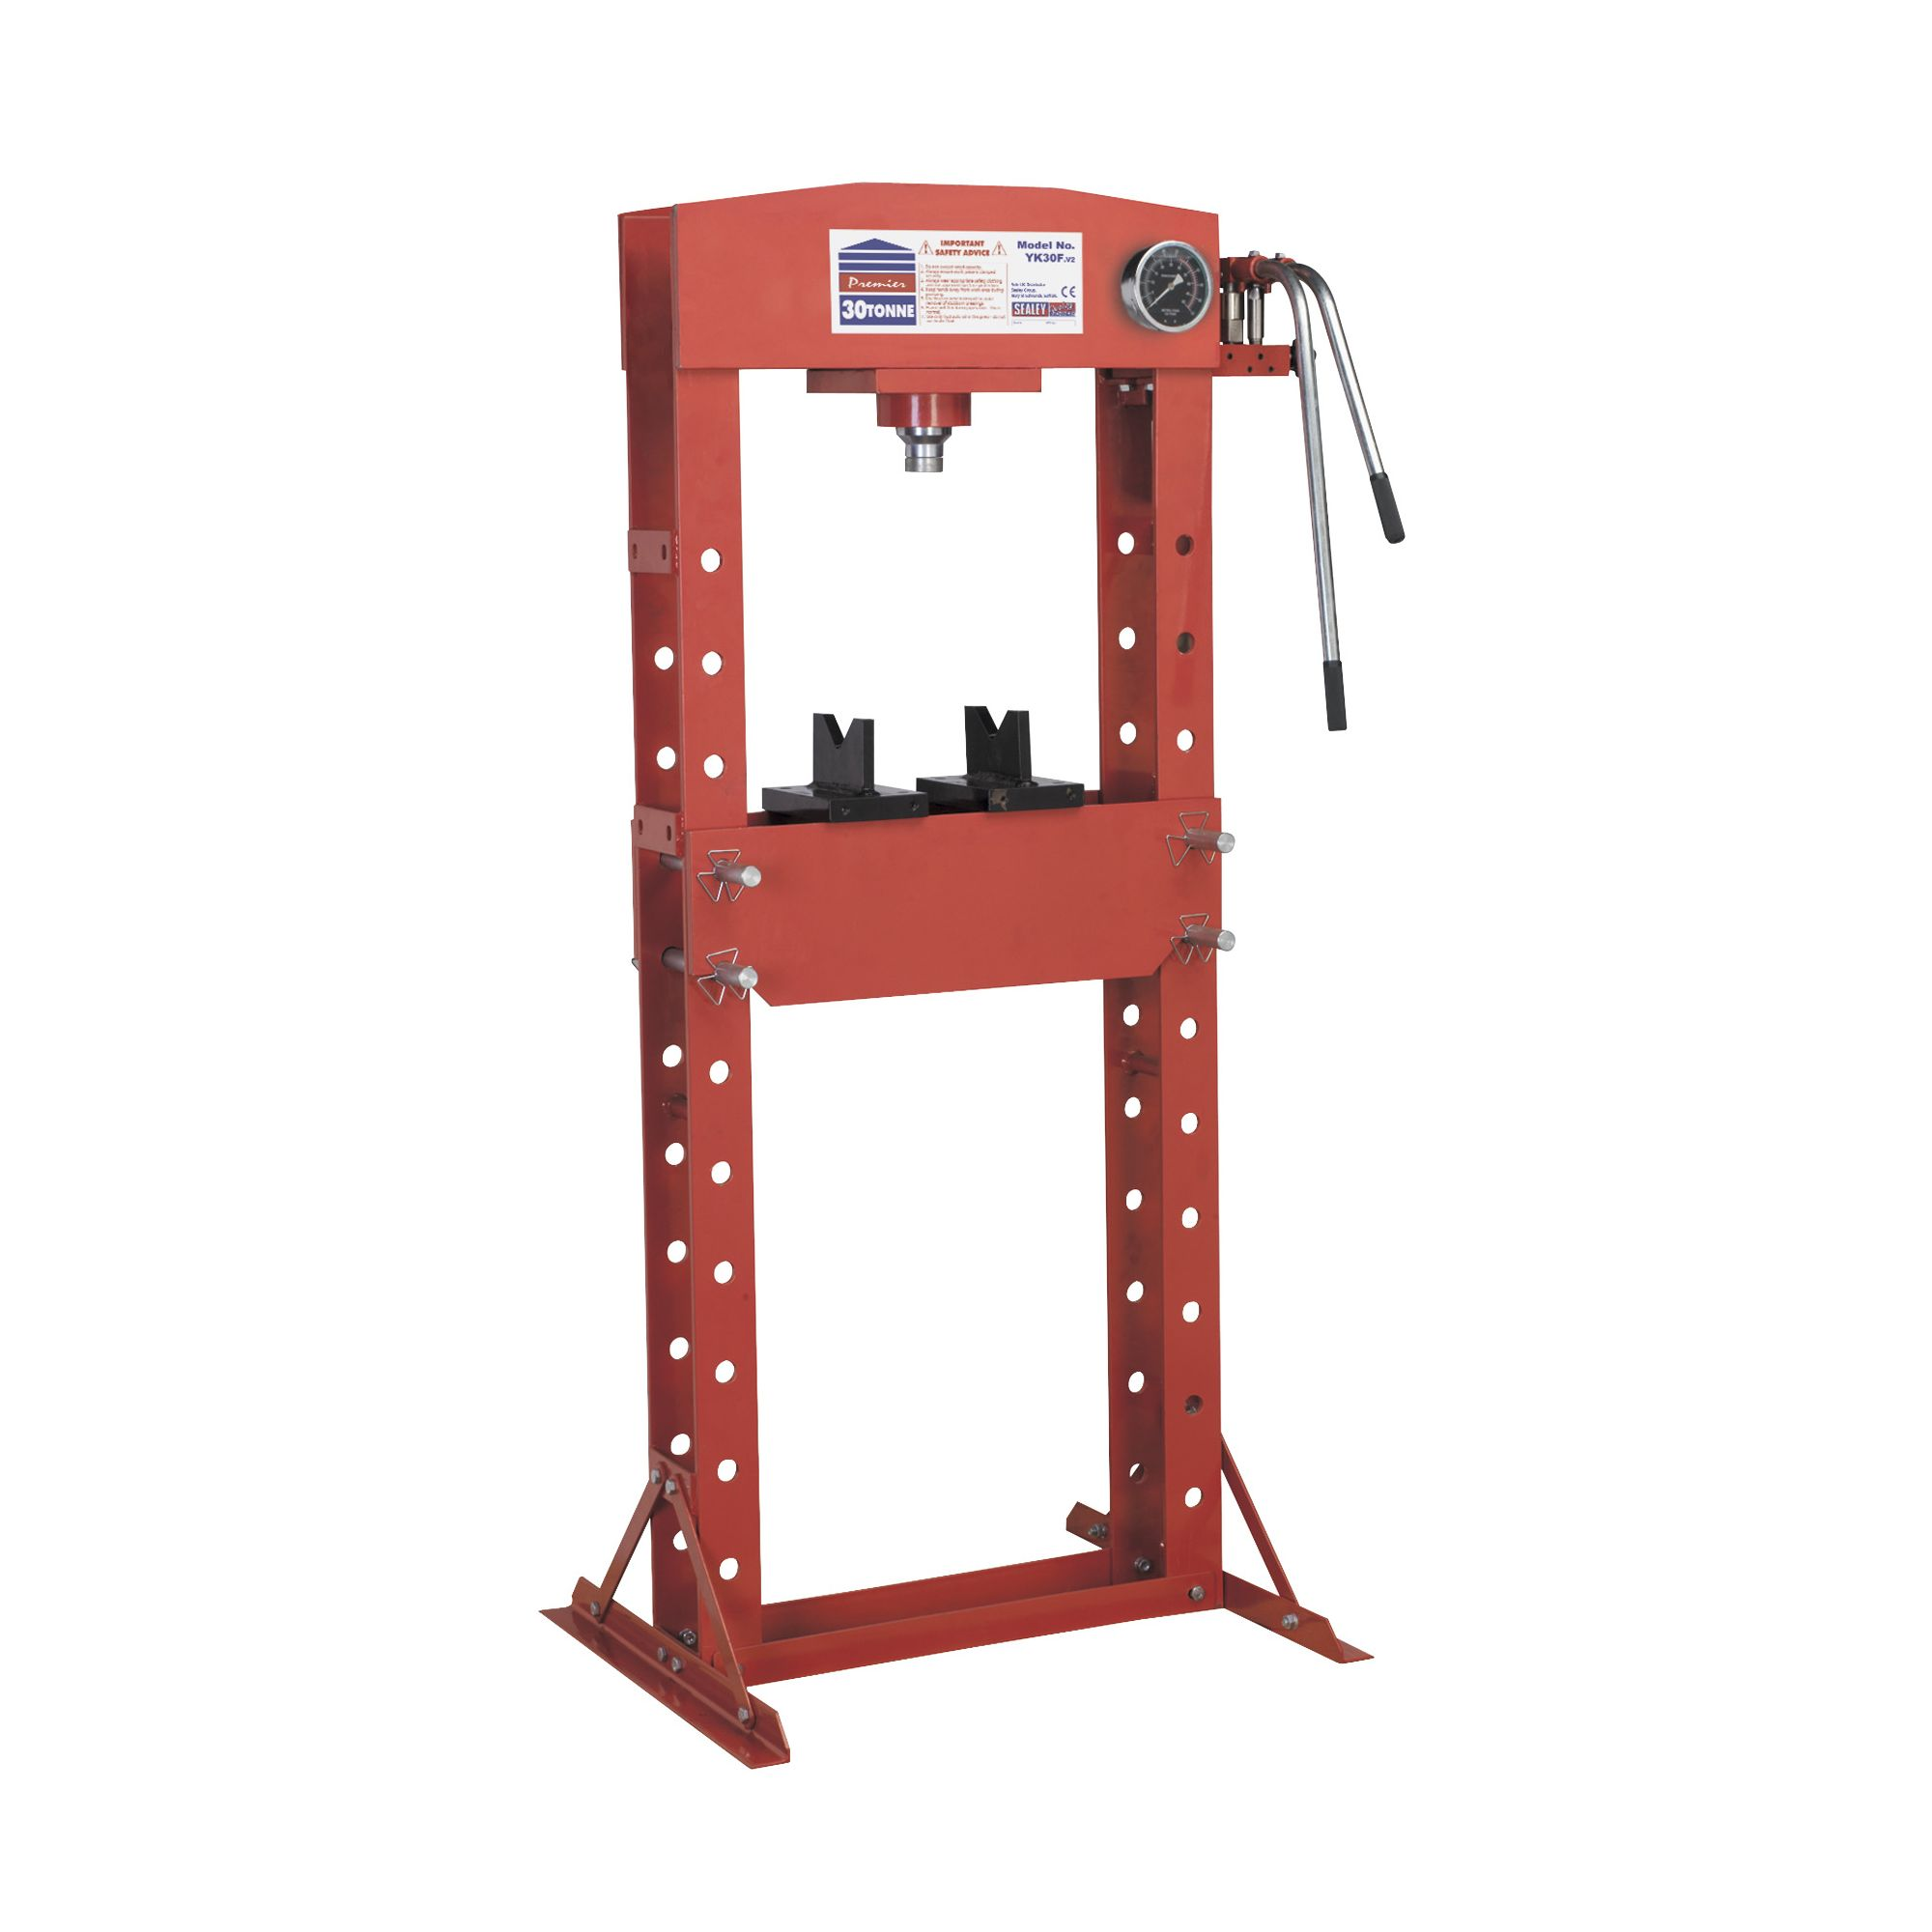 Hydraulic Press 30tonne Floor Type at Tesco Direct